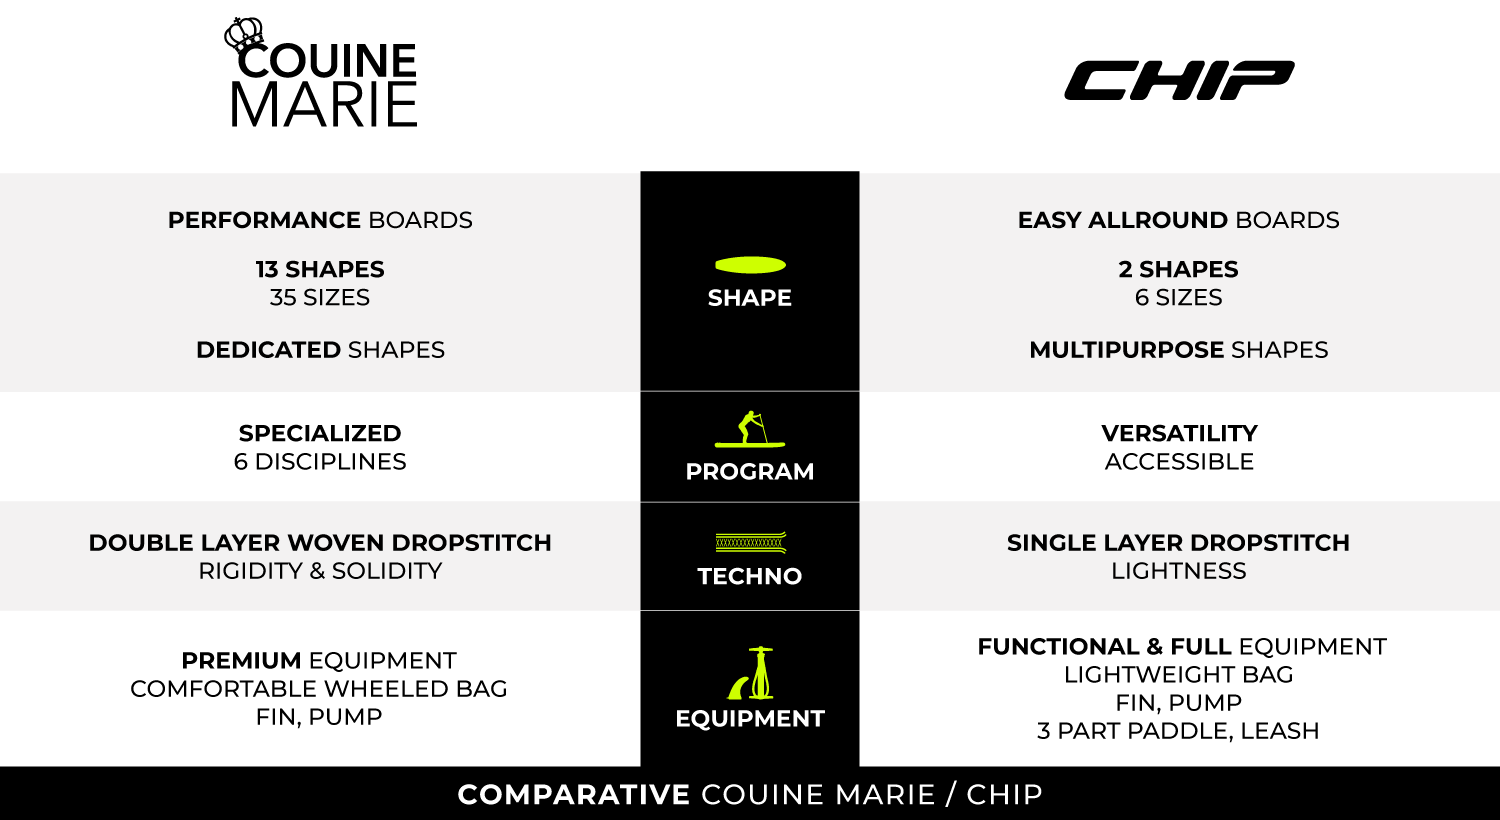 What is the difference between our Couine Marie range and our Chip range? Our summary table